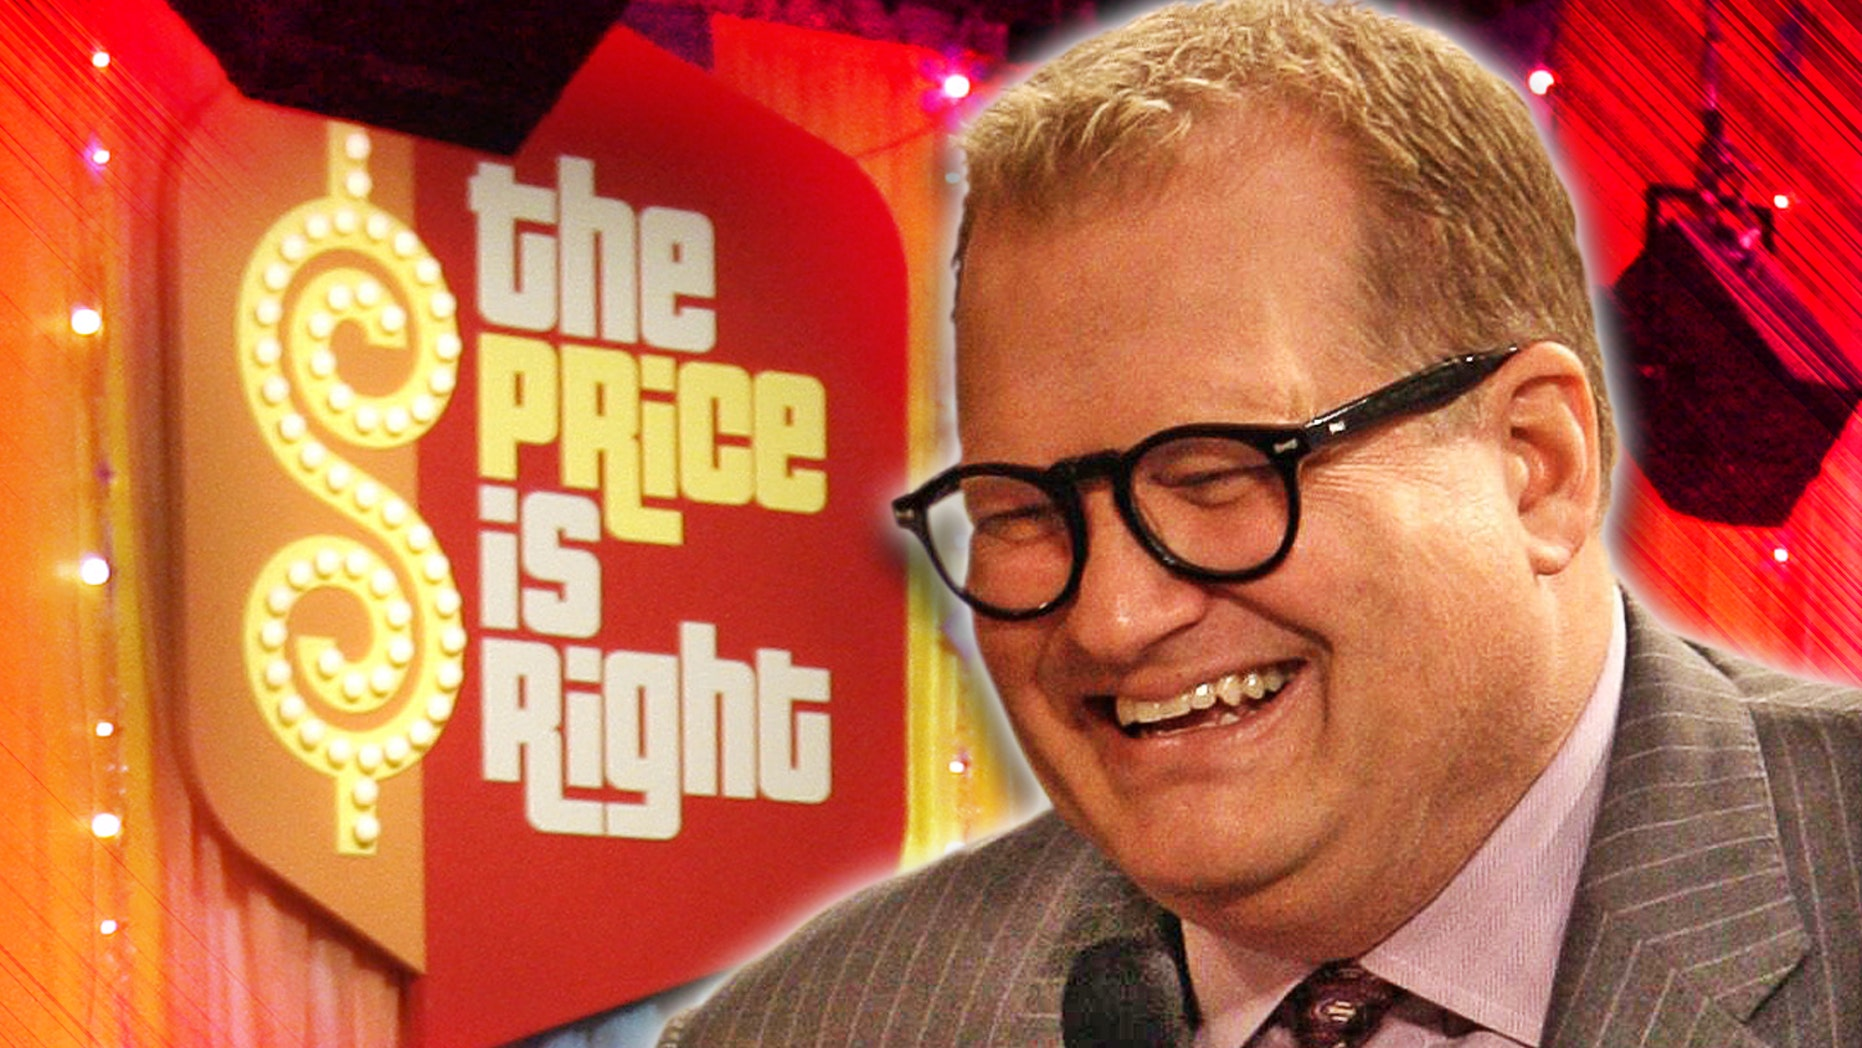 """Comedian Drew Carey, new host of the game show """"The Price is Right,"""" talks with the audience during a break in taping of the game show at CBS's Bob Barker Studio in Los Angeles Thursday, Oct. 4, 2007. (AP Photo/Kevork Djansezian)"""